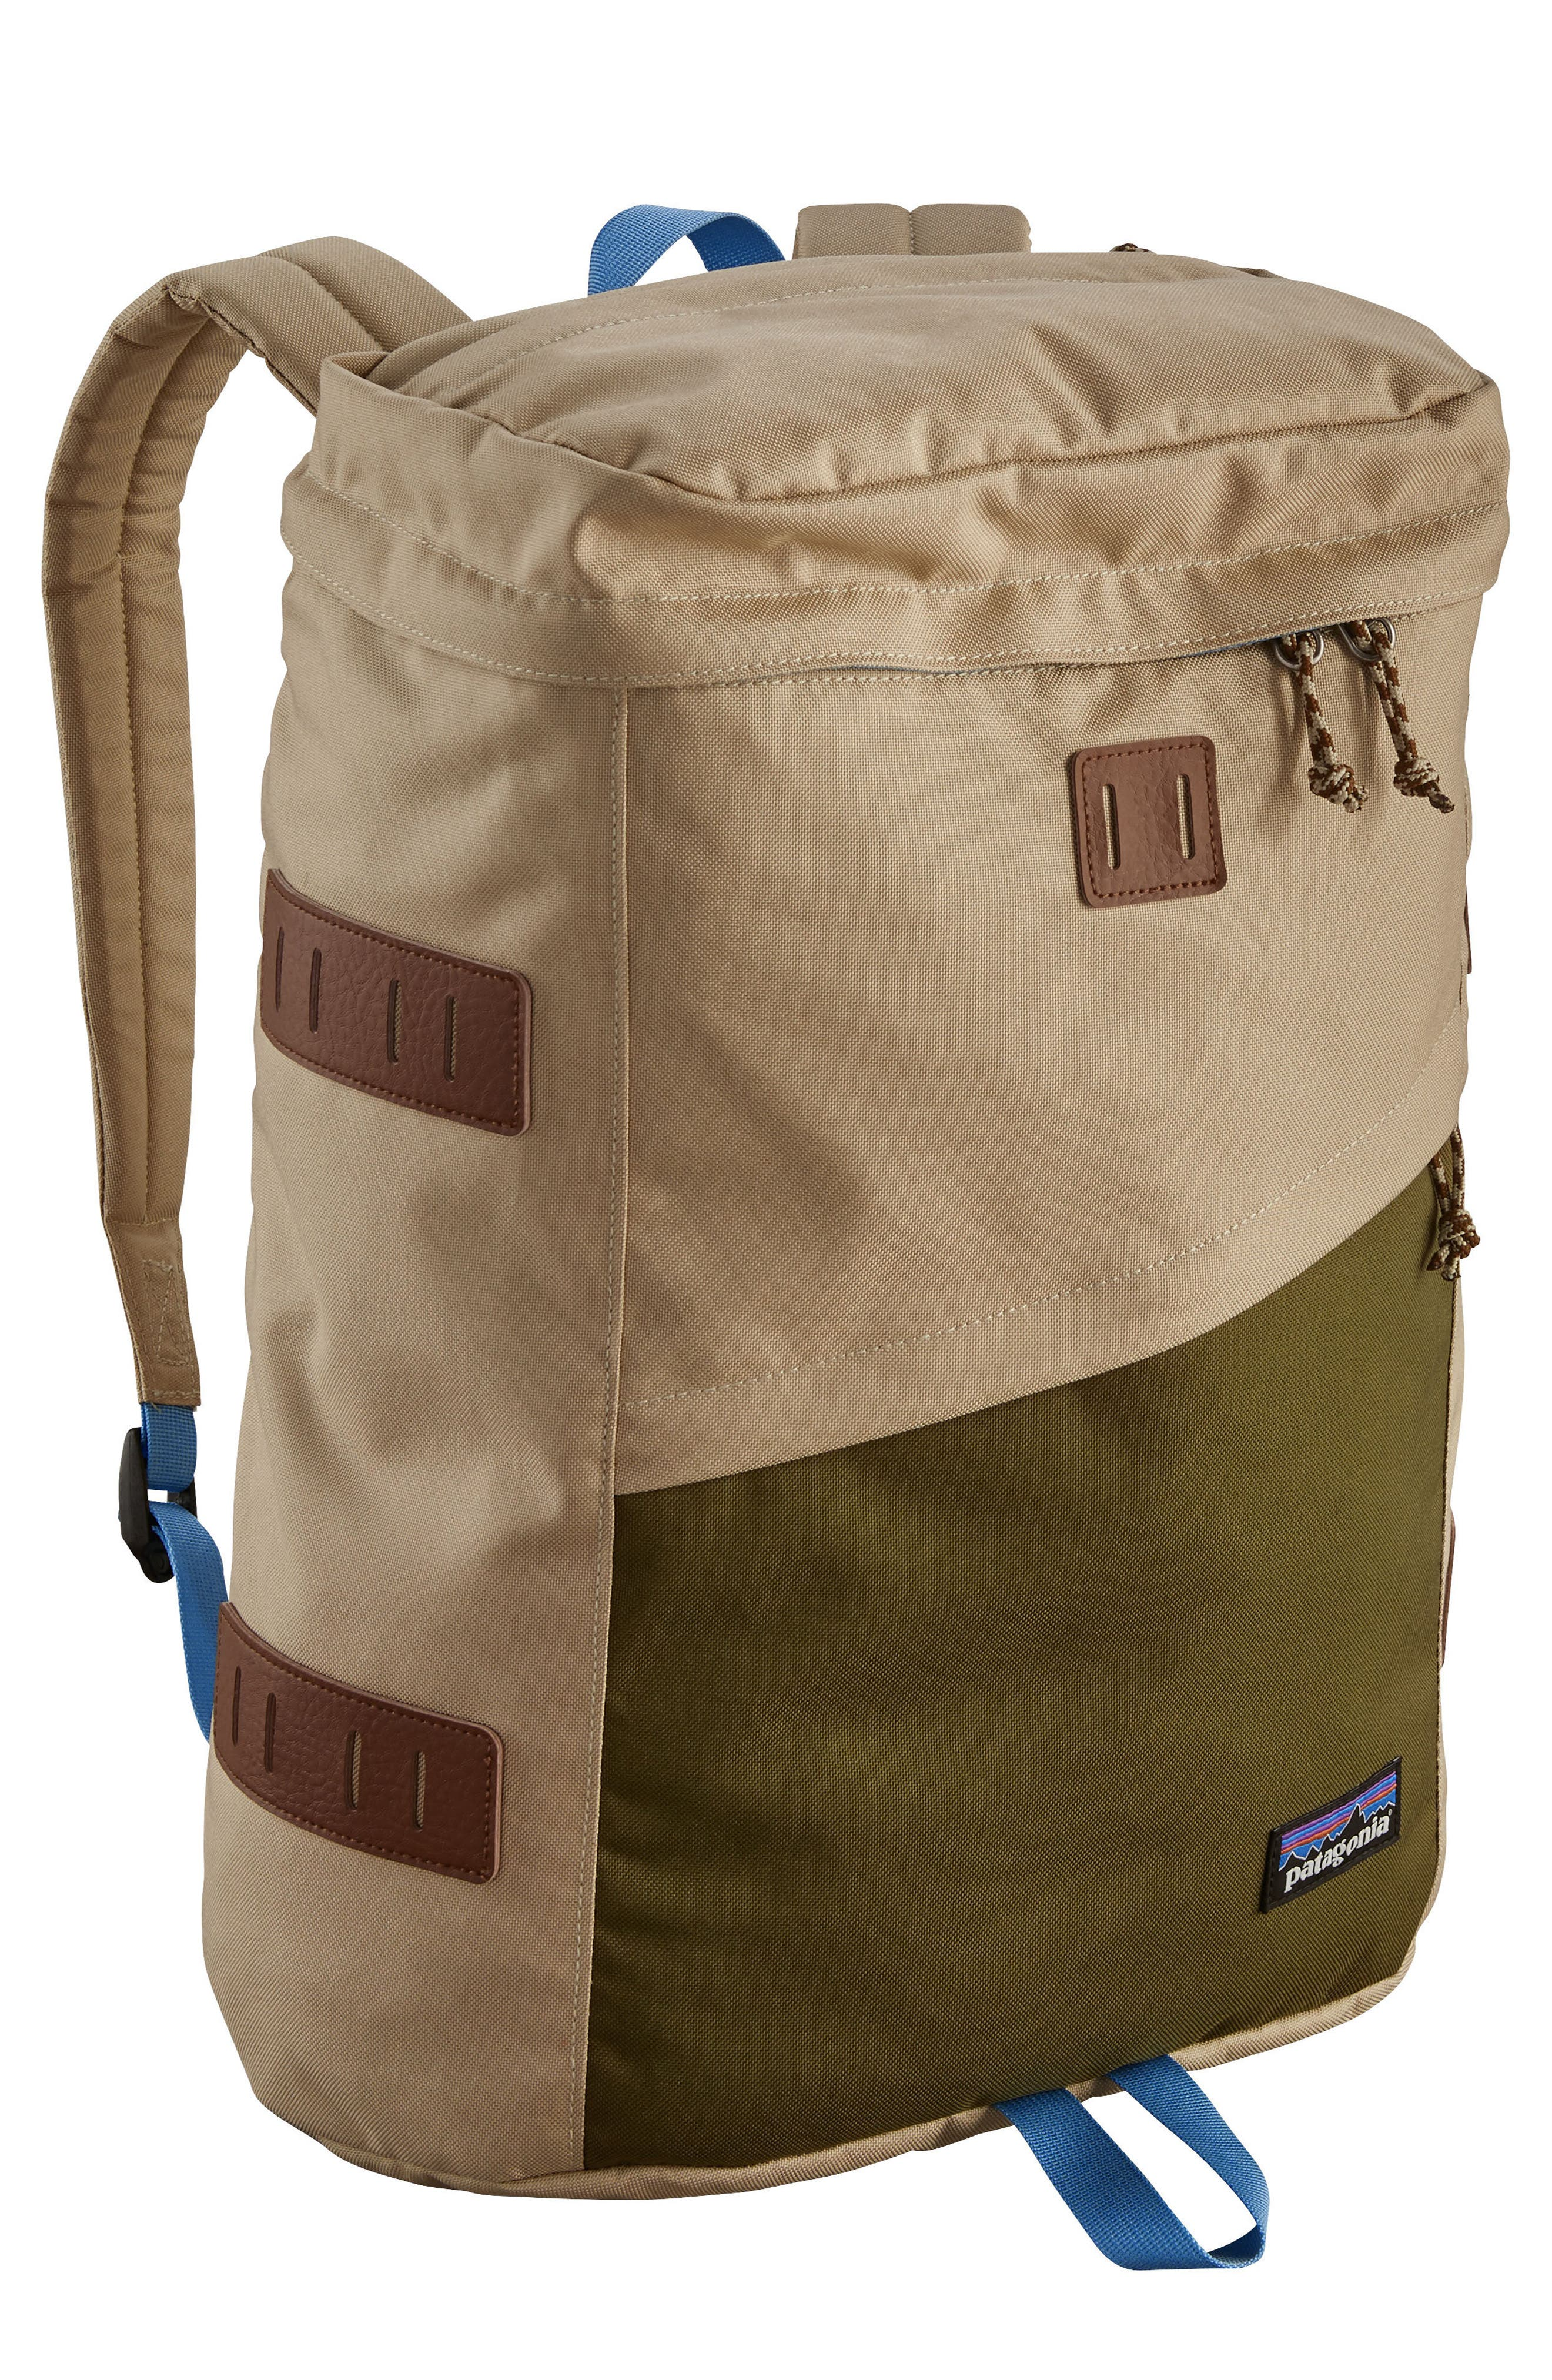 PATAGONIA 'Toromiro' Backpack